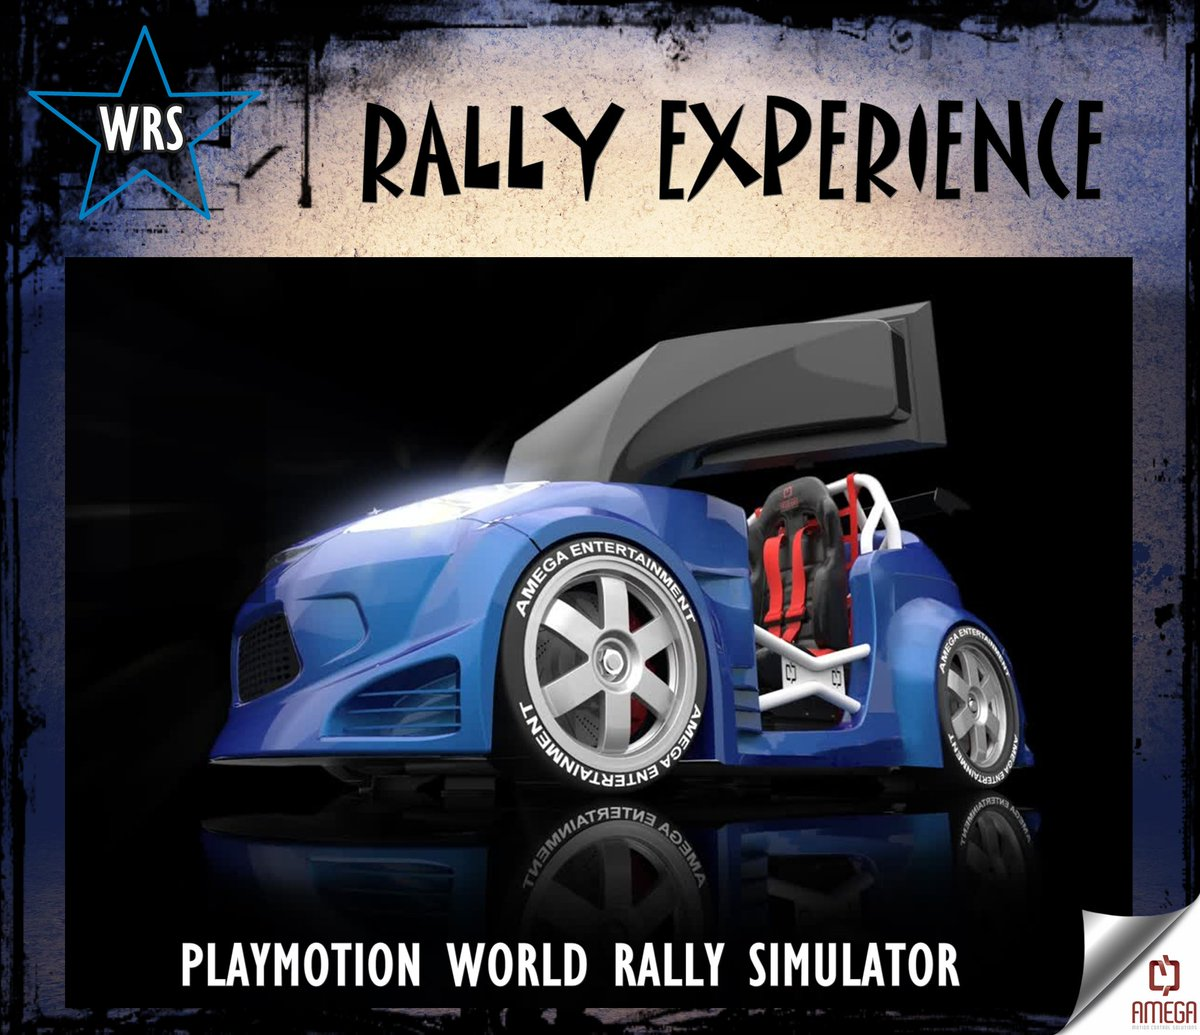 WorldRallySimulator tagged Tweets and Download Twitter MP4